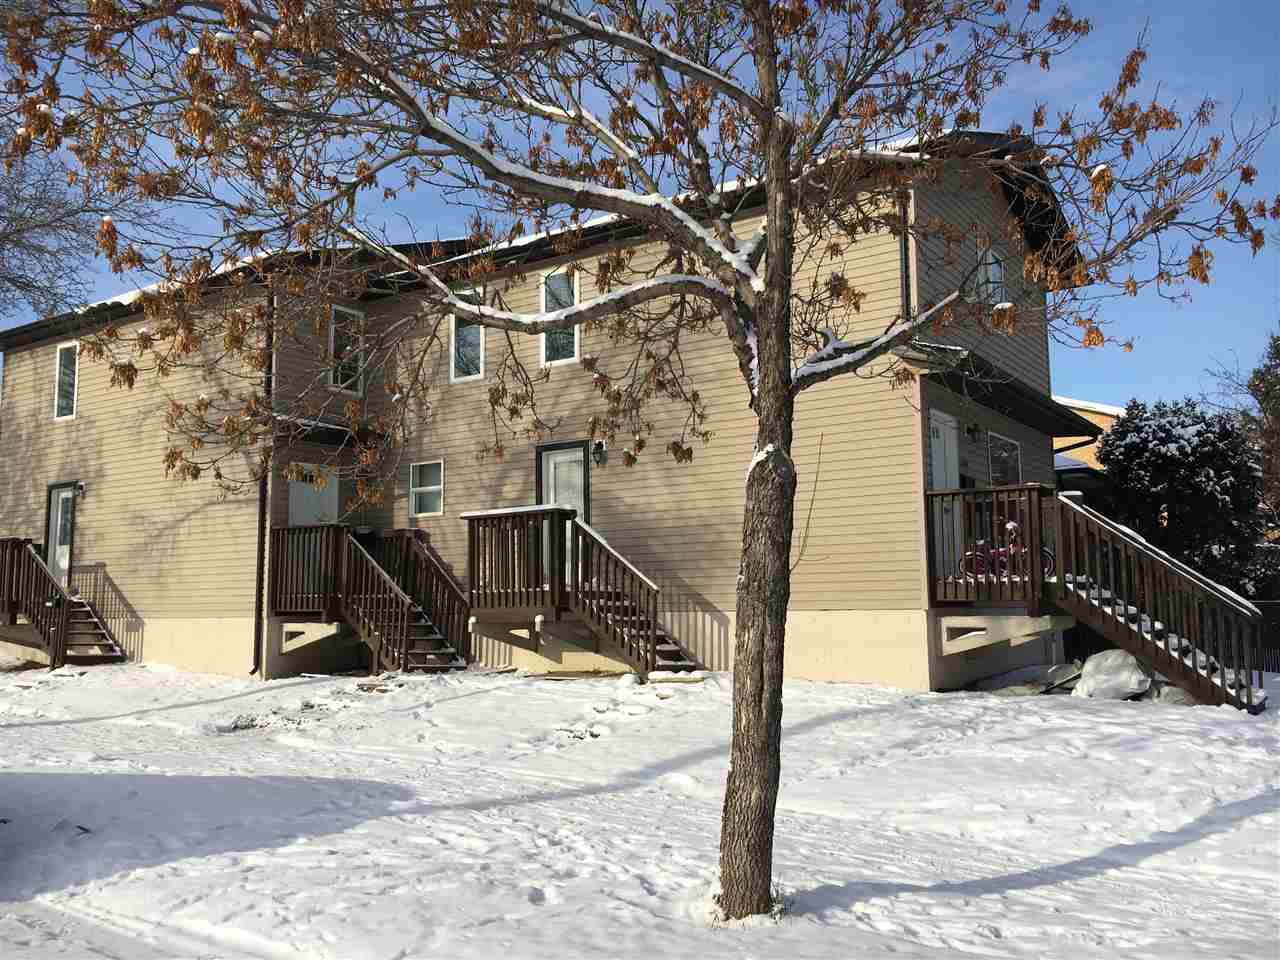 Exterior Front/Side of this Impressive Two Storey Side by Side Duplex located on a Corner Lot.